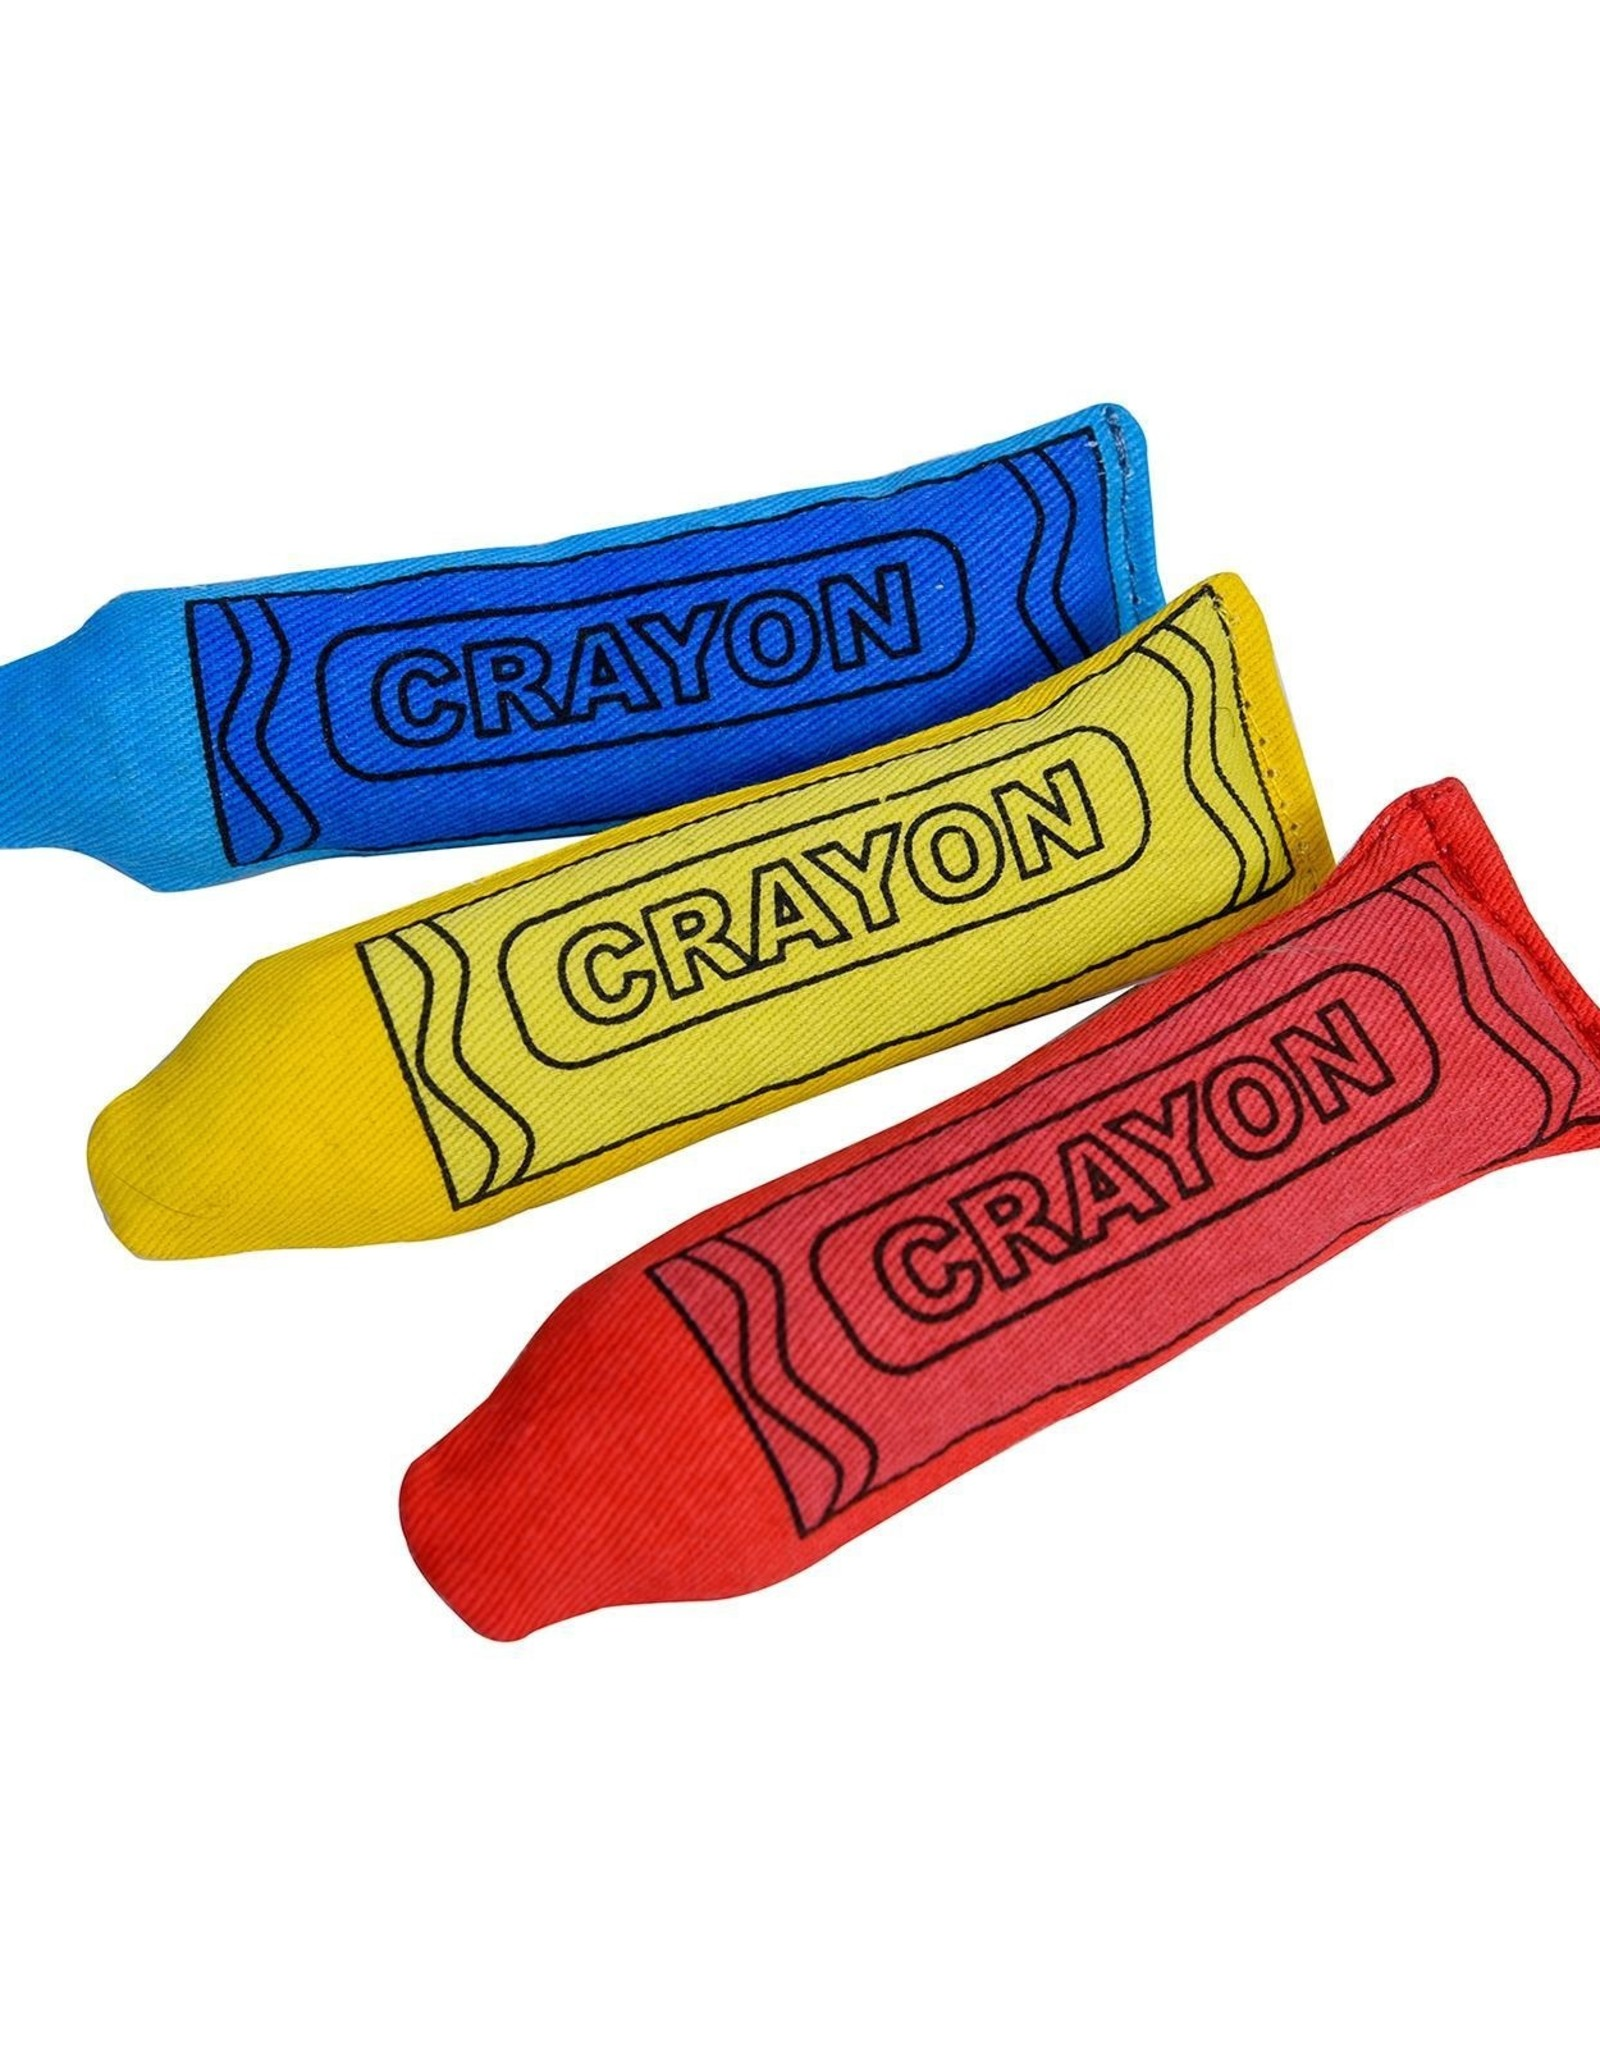 Yeowww YEOWWW crayon 3 pack